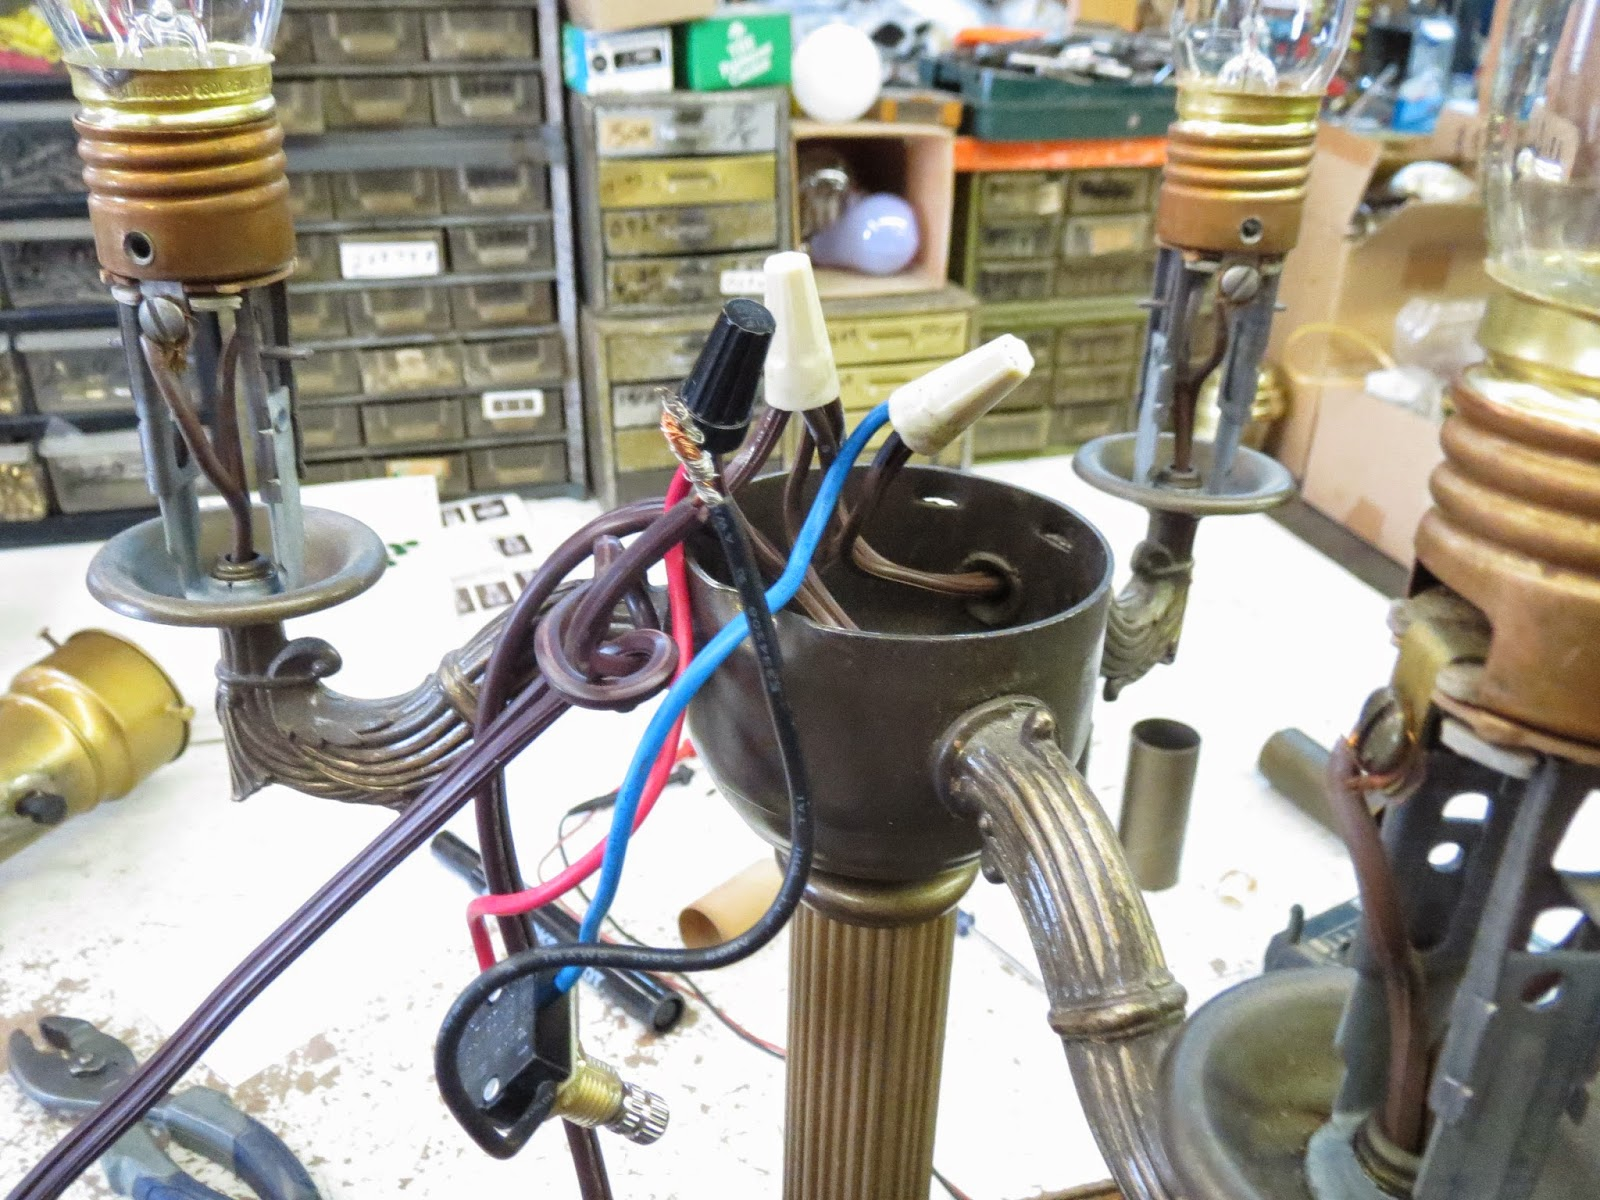 Lamp Parts and Repair | Lamp Doctor: Broken Antique Brass Floor ...